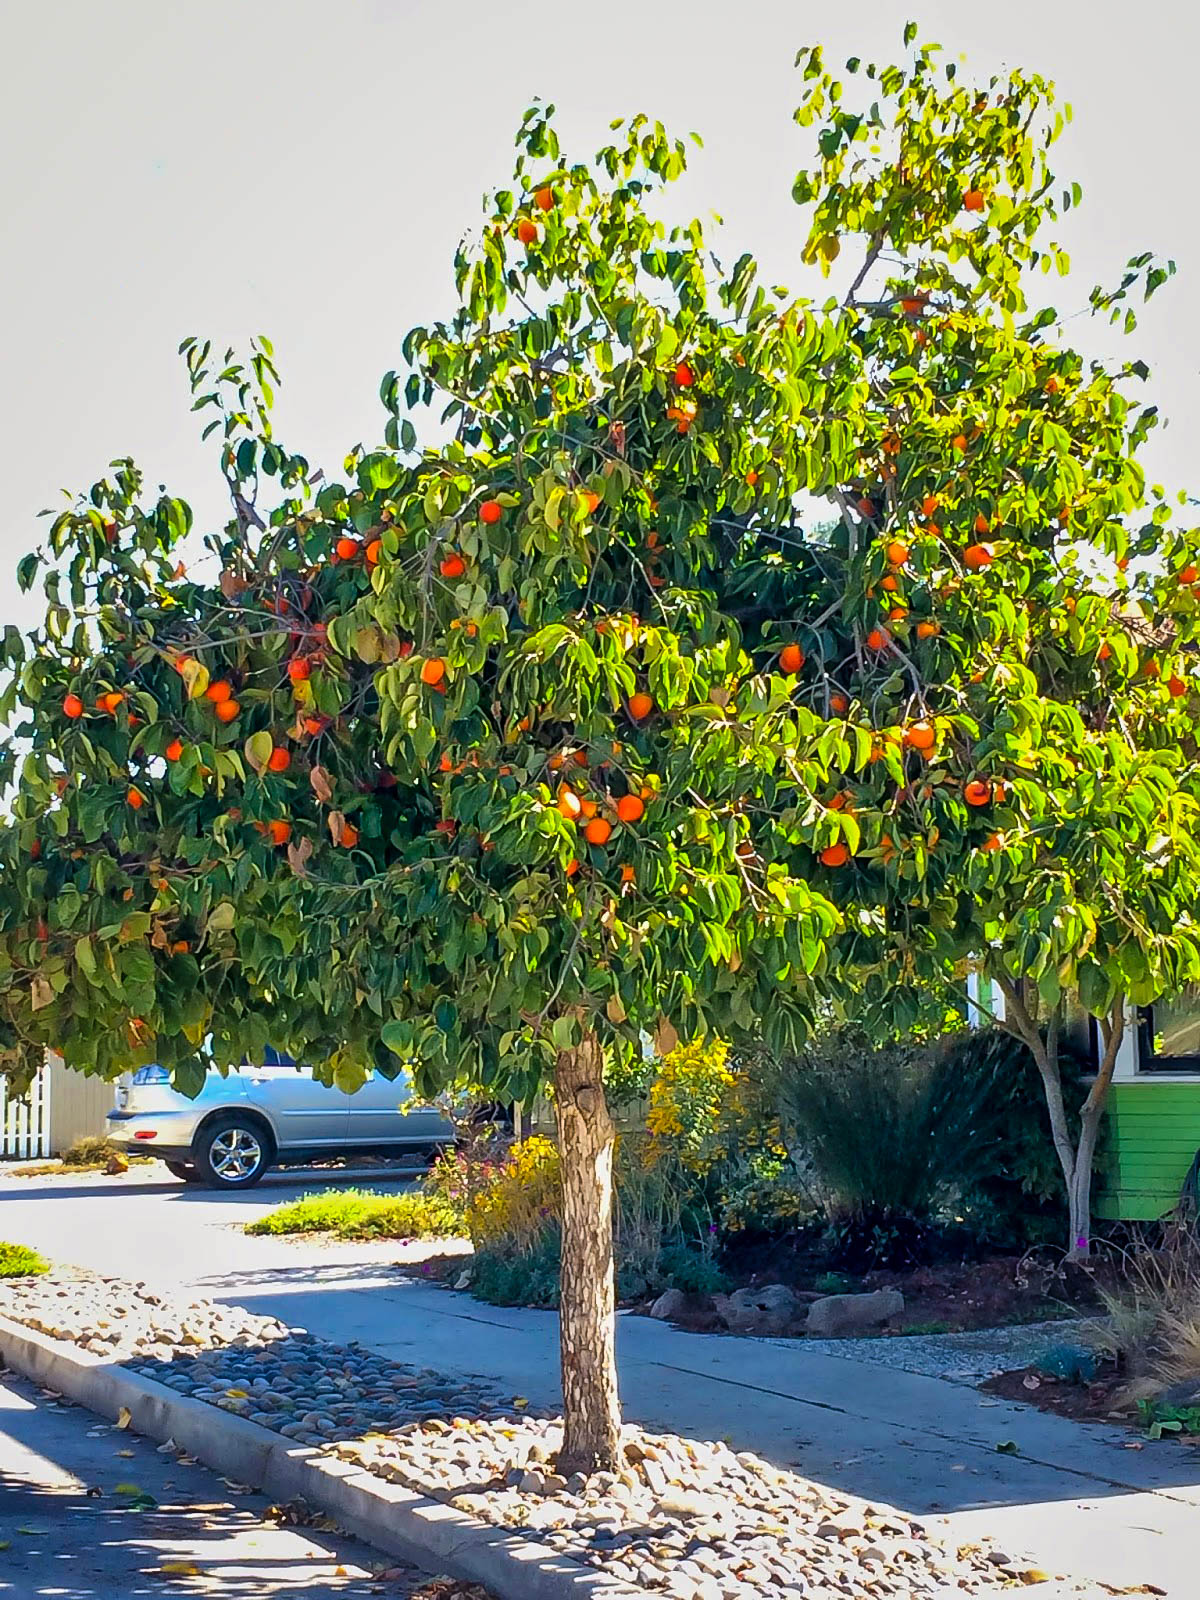 hachiya japanese persimmon trees for sale the tree center�